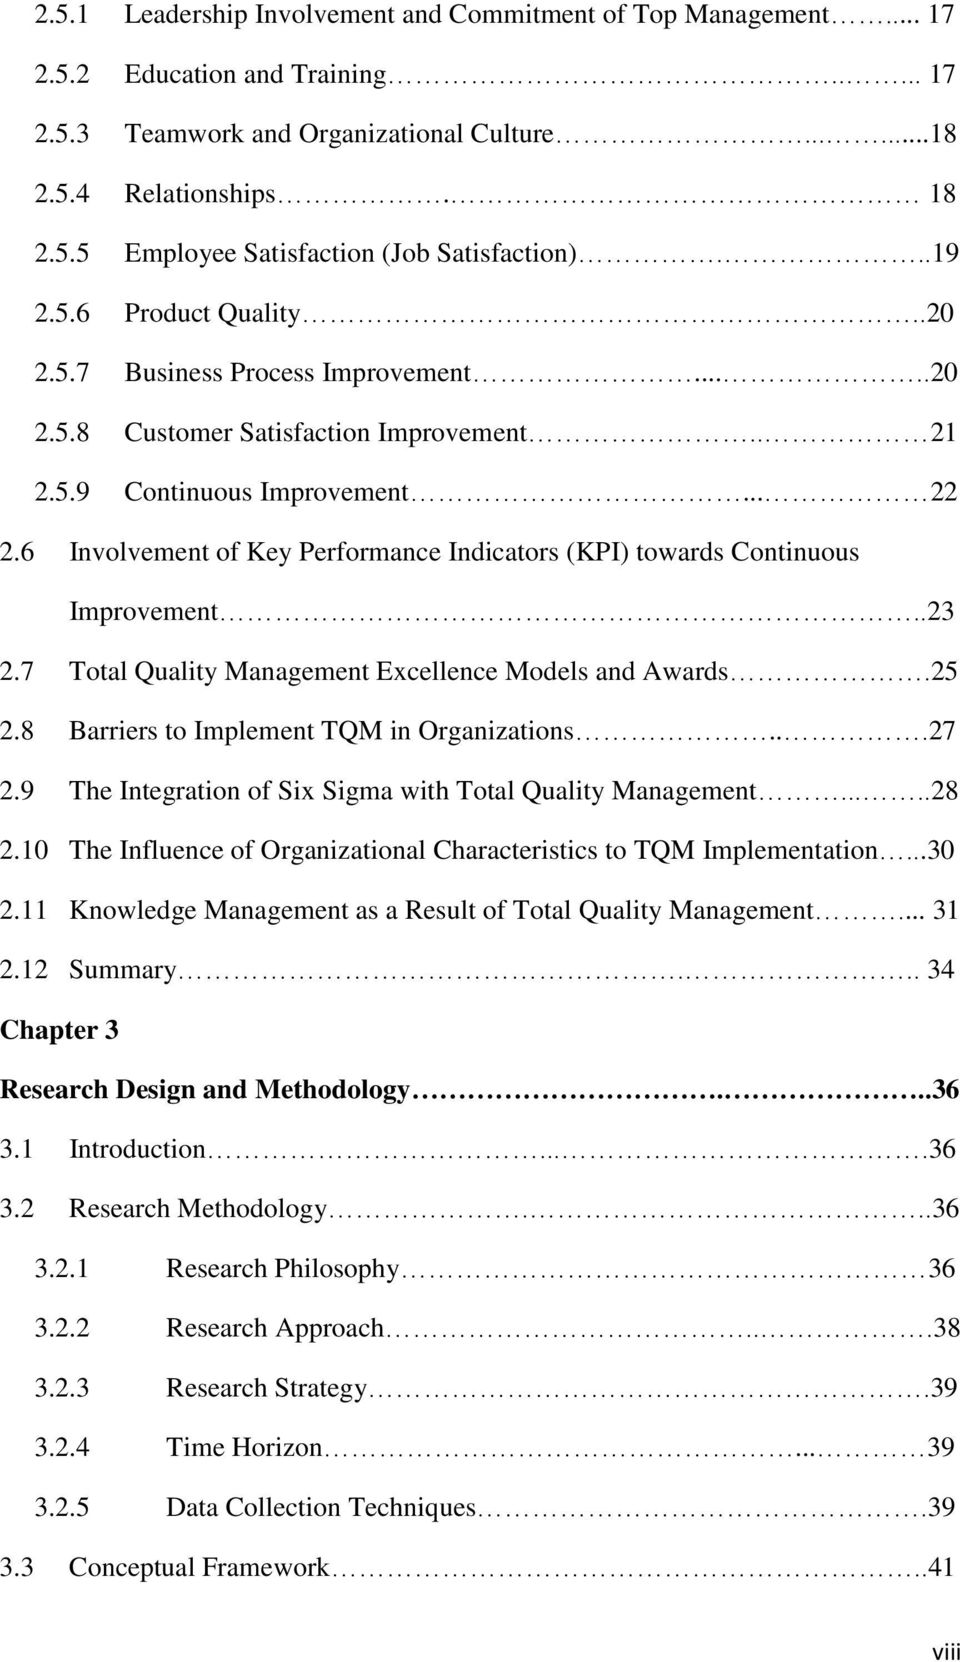 6 Involvement of Key Performance Indicators (KPI) towards Continuous Improvement..23 2.7 Total Quality Management Excellence Models and Awards.25 2.8 Barriers to Implement TQM in Organizations...27 2.